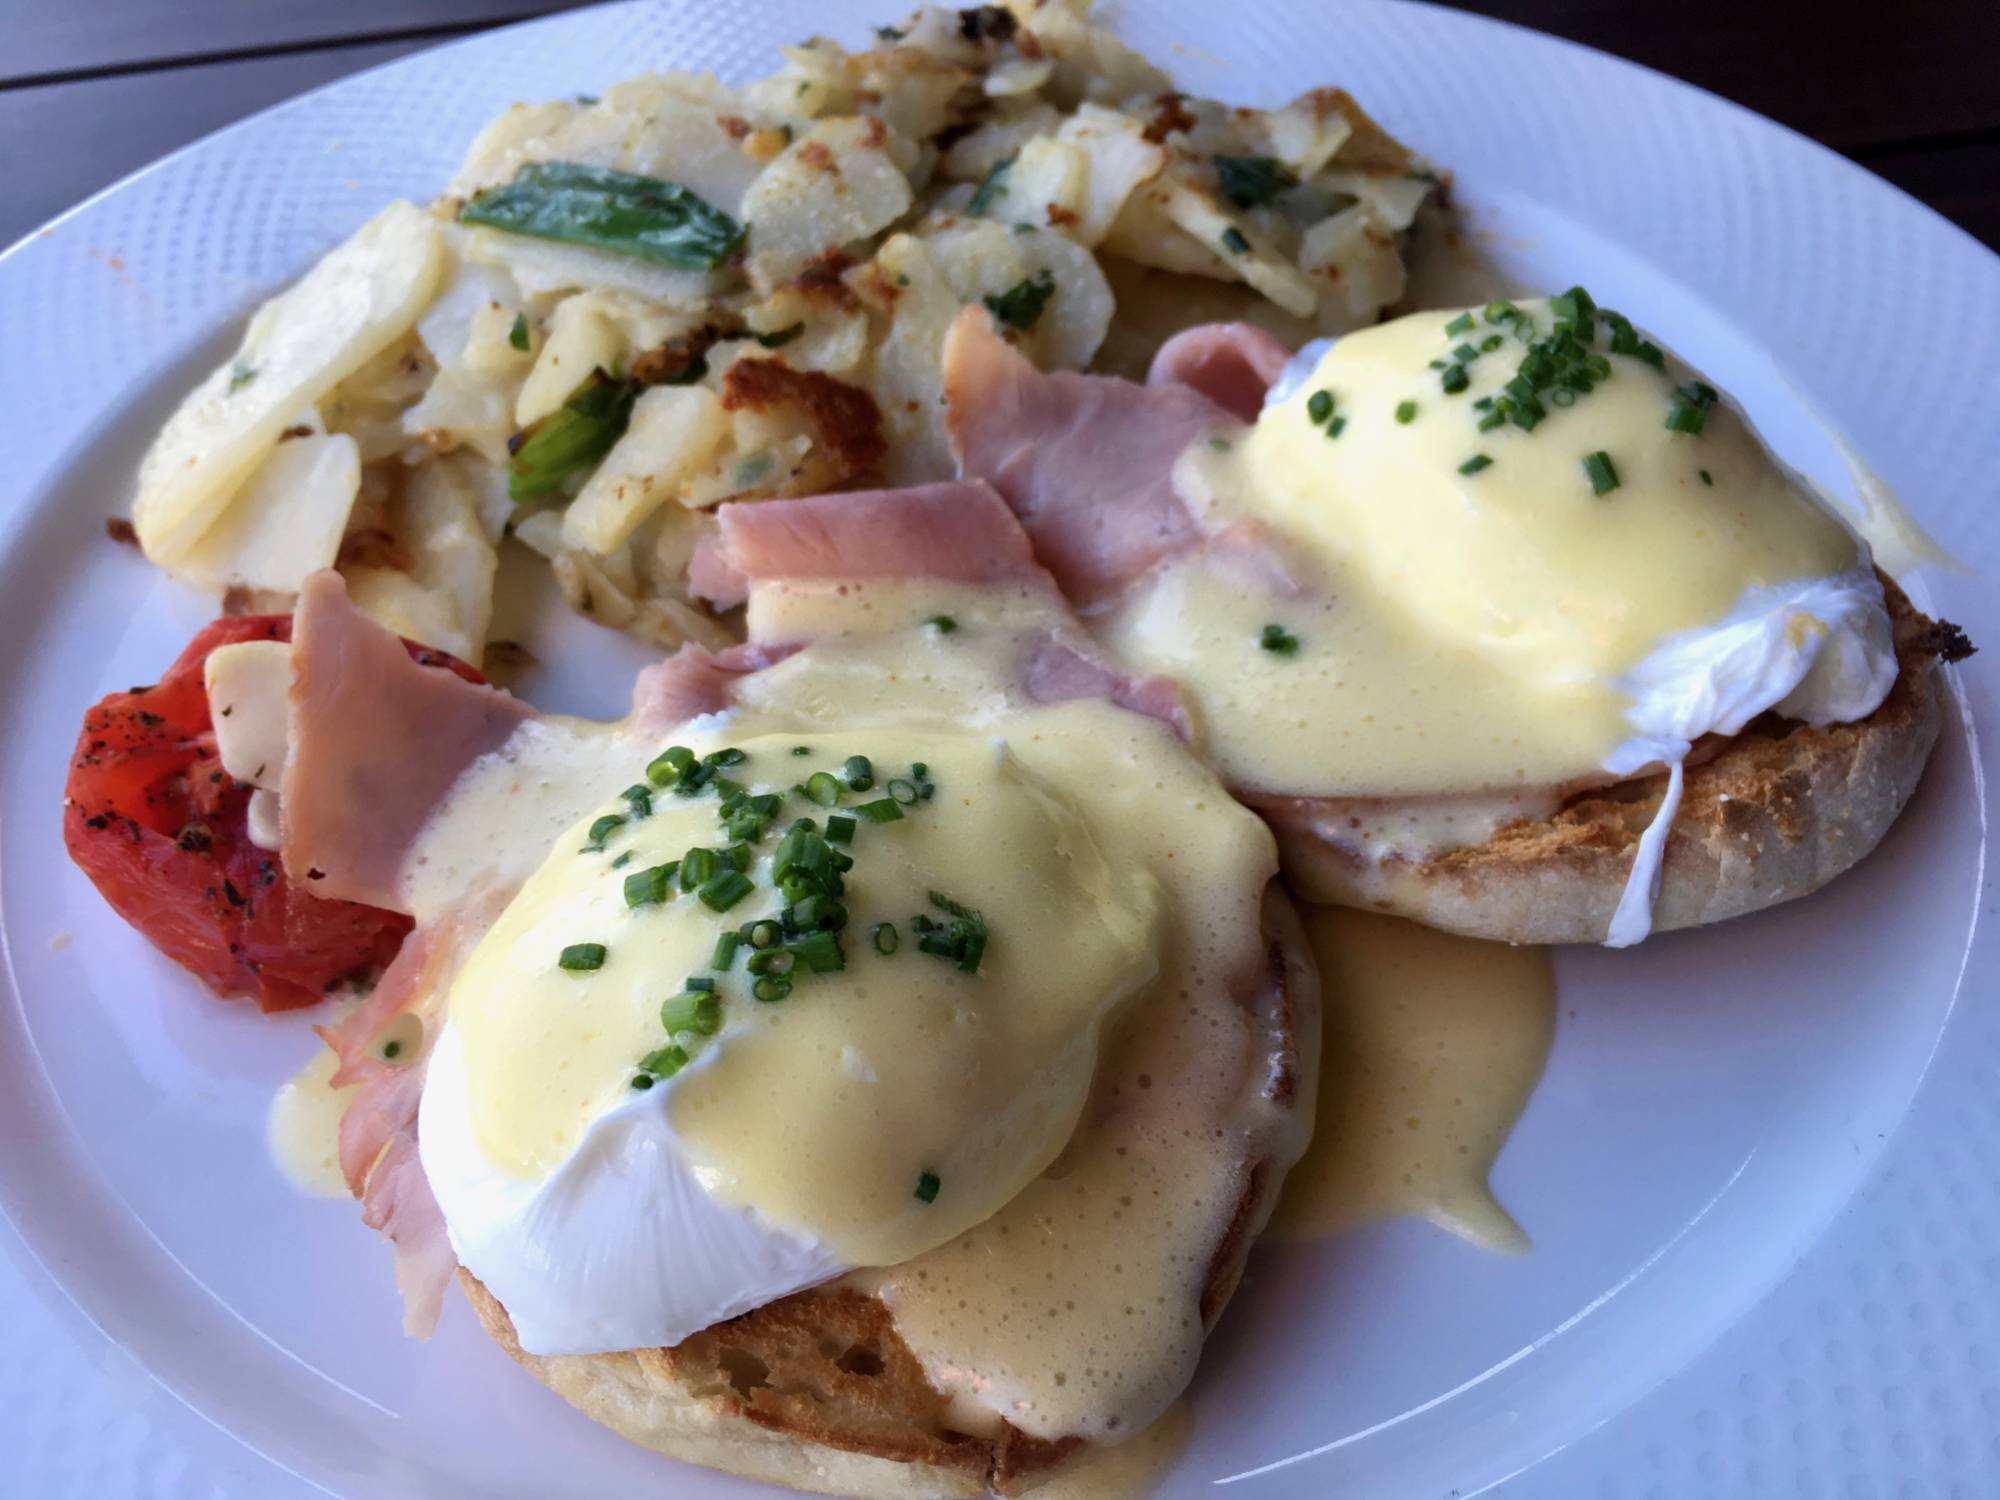 The country Eggs Benedict at Town in San Carlos.